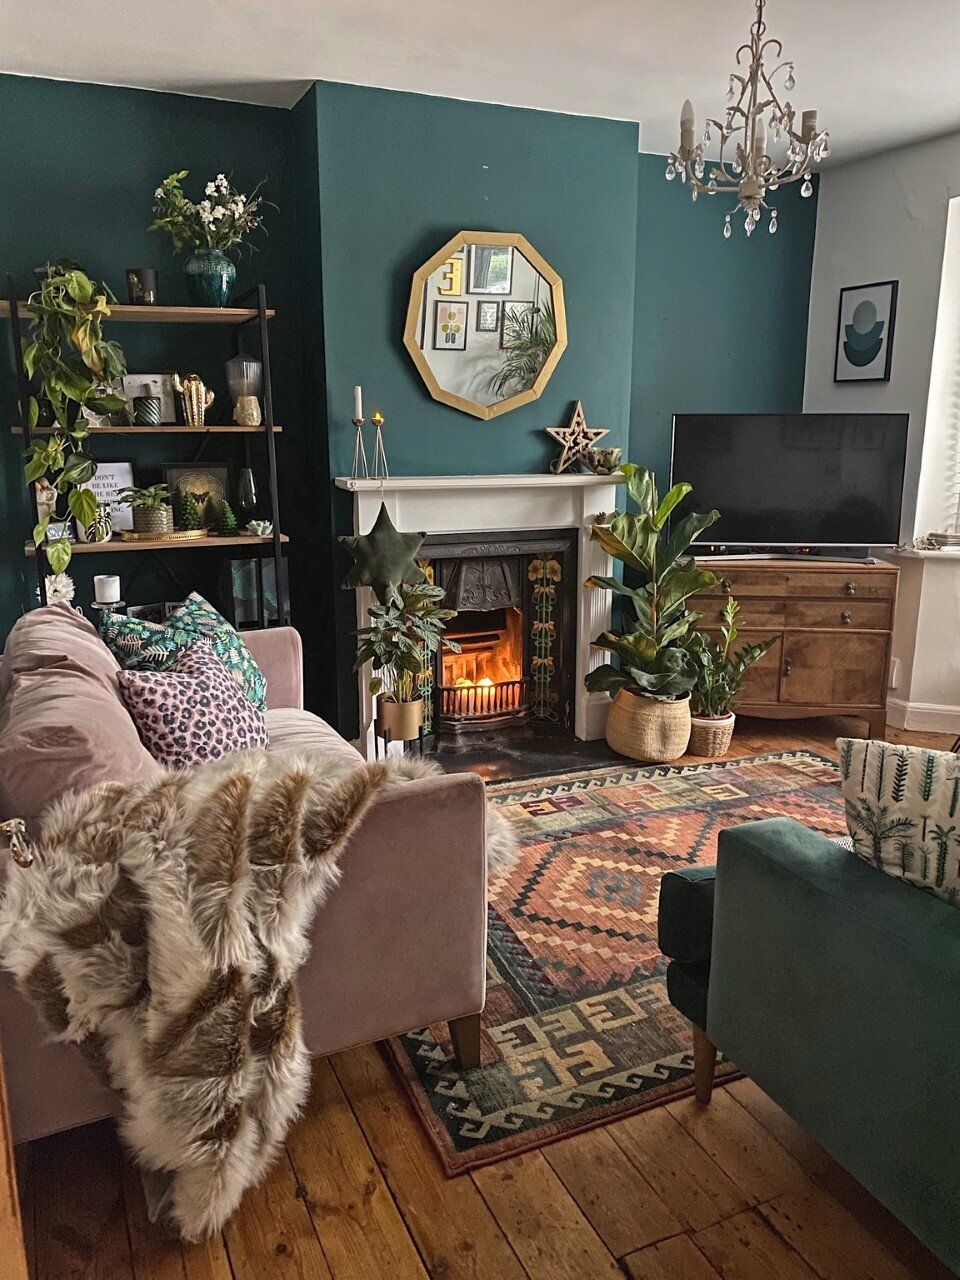 How To Create a Gallery Wall For Your Home  Melanie Jade Design With such a striking green wall in the living room I decided to create a gallery wall on the opposite wall...